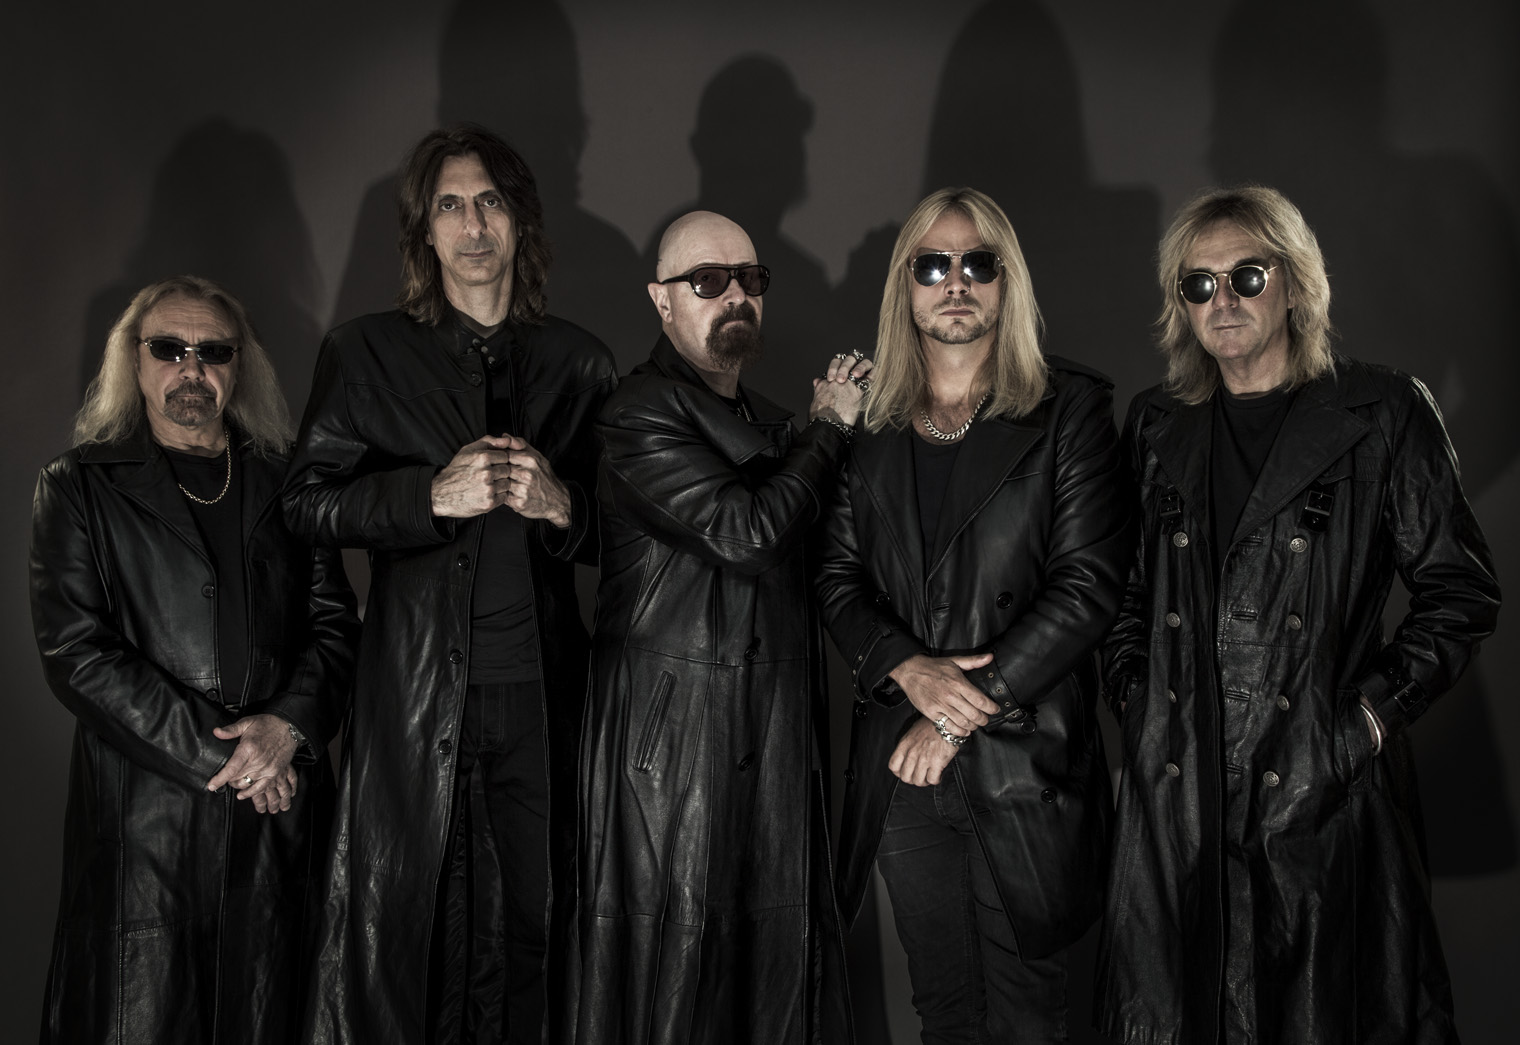 UPCOMING: Judas Priest